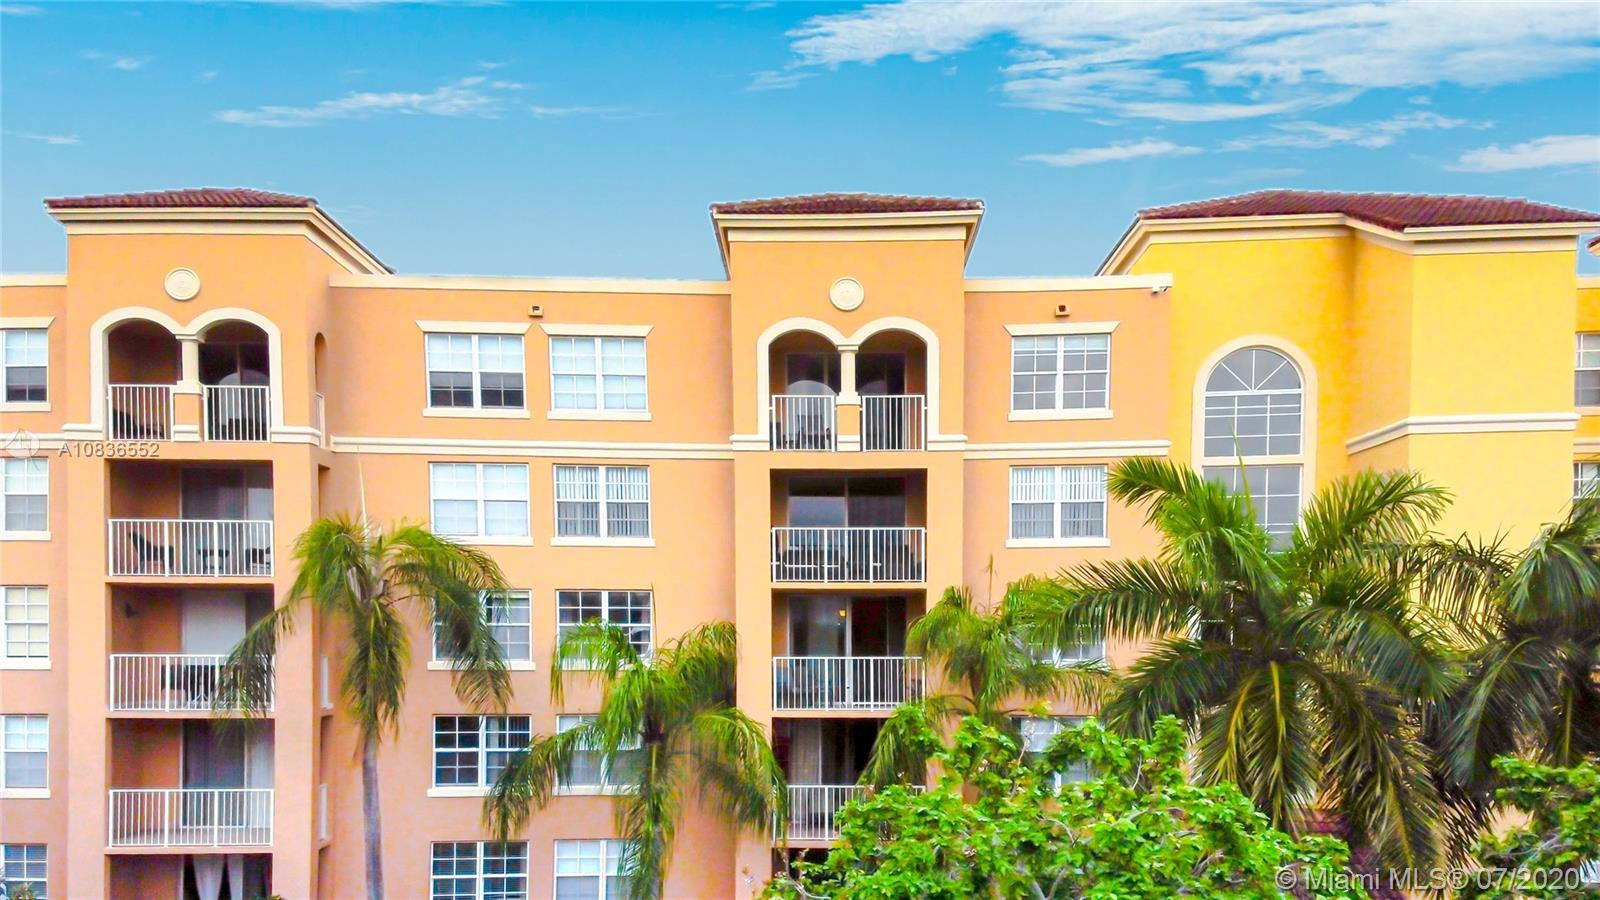 19999 E Country Club Dr #1403 For Sale A10836552, FL